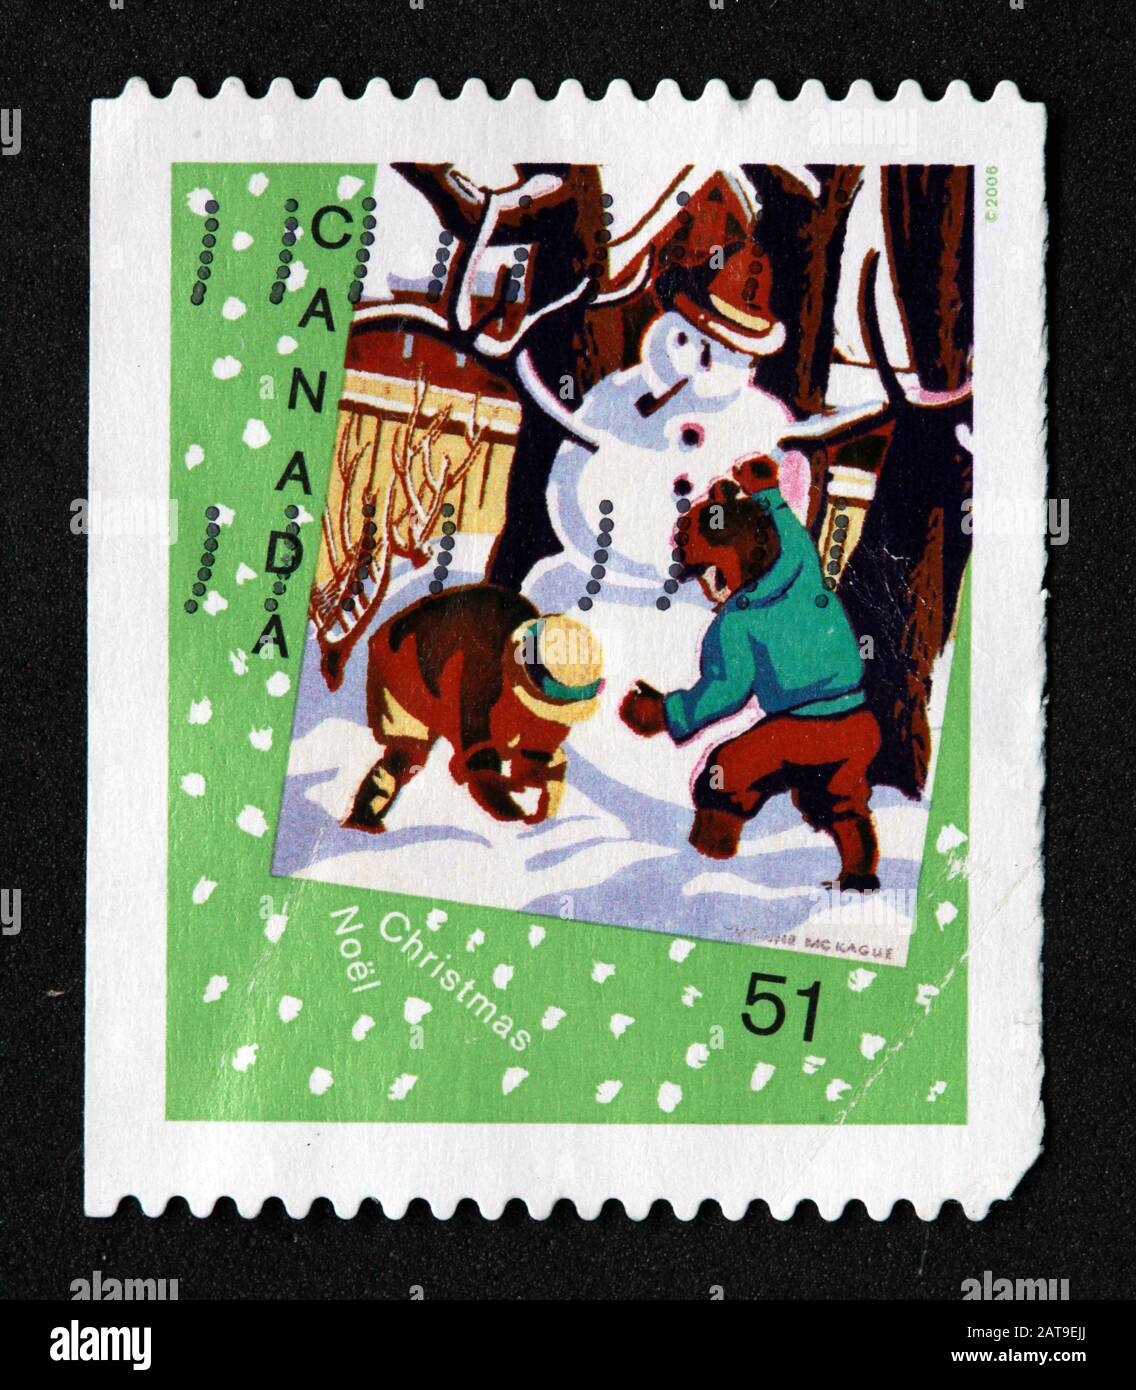 Hotpixuk,@Hotpixuk,GoTonySmith,stamp,postal,franked,frank,used stamps,used franked,used,franked stamp,from envelope,history,historic,old,poste,post office,communications,postage,sending letters,sending,parcels,green,snowman,51c 51cent,Noel,Christmas,Canadian